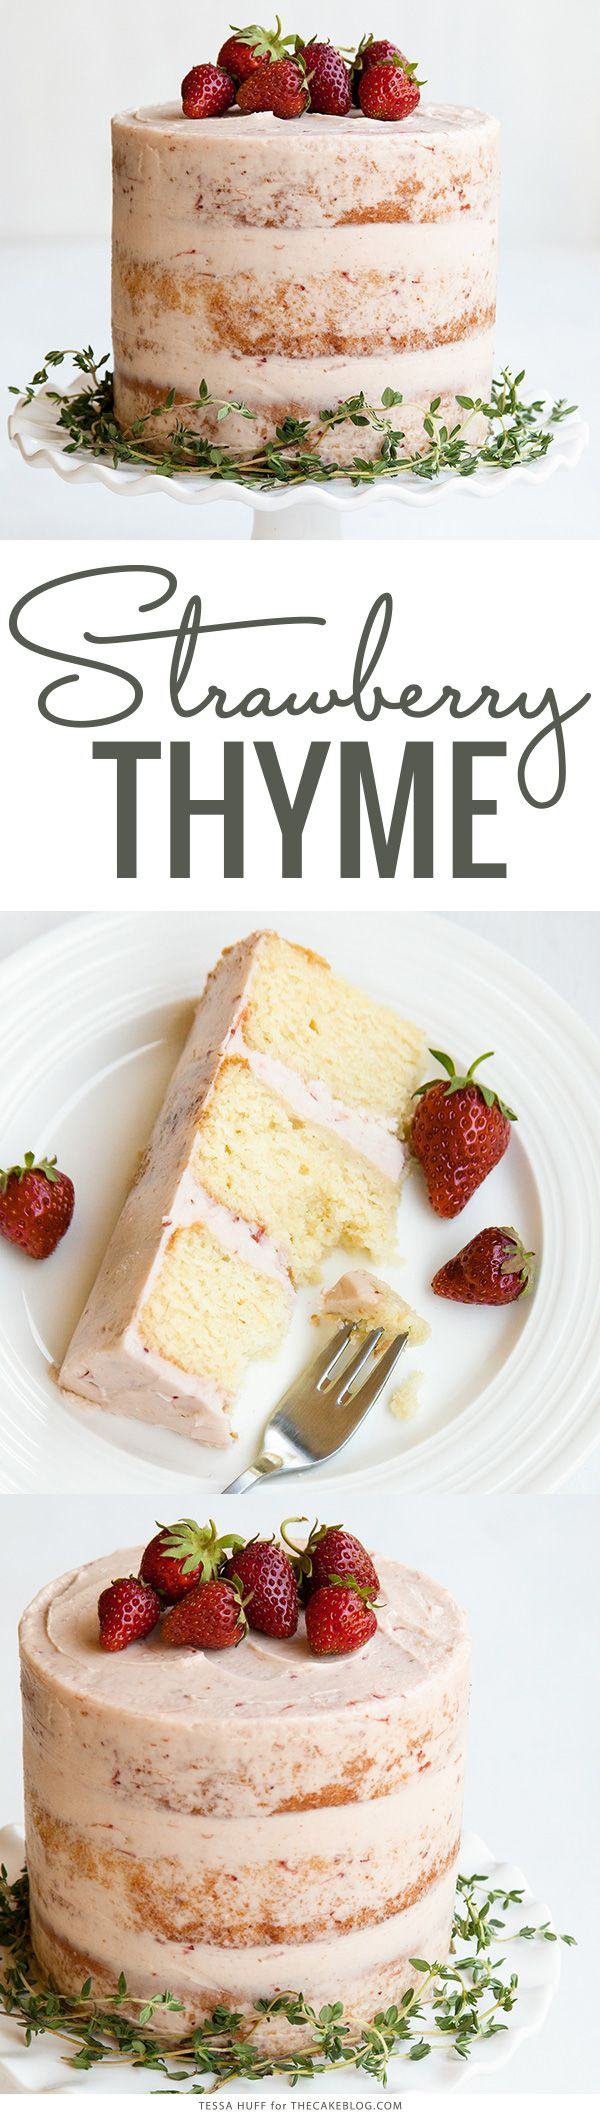 A fresh flavor combo perfect for summer | Strawberry Thyme Cake | by Tessa Huff for TheCakeBlog.com